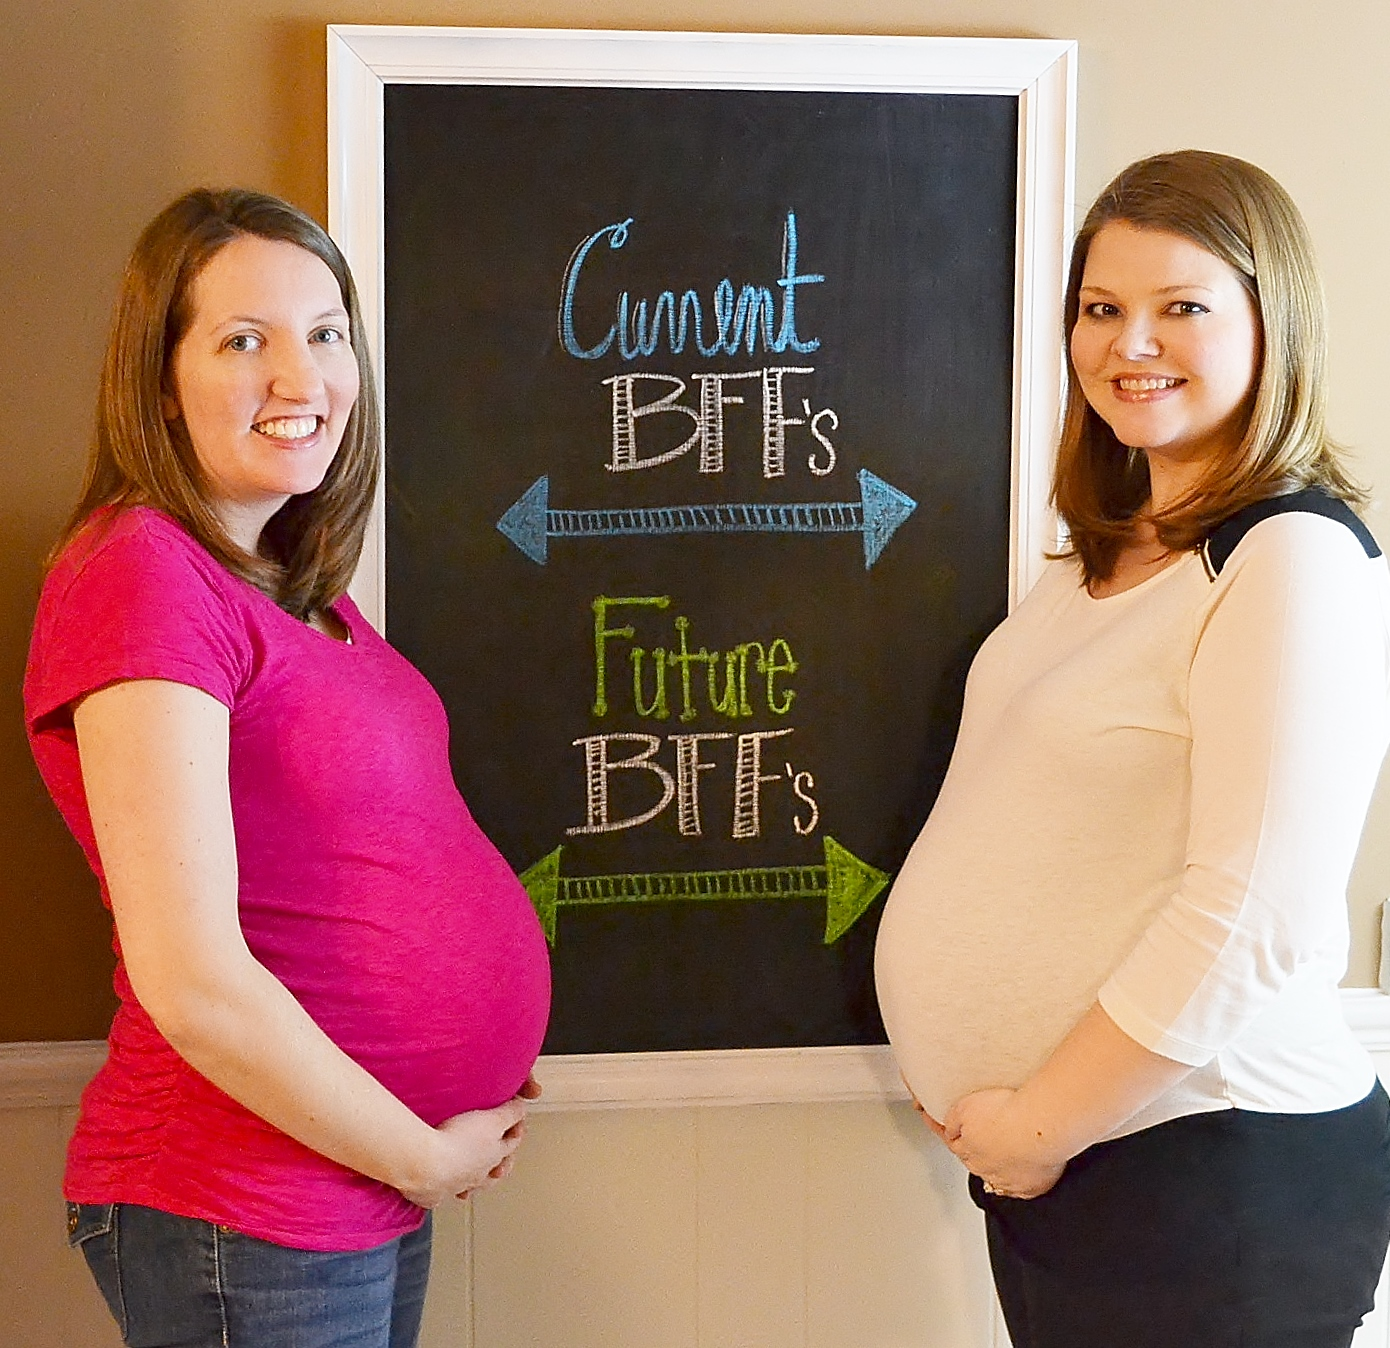 pregnancy chalkboard 27 weeks and future bff s